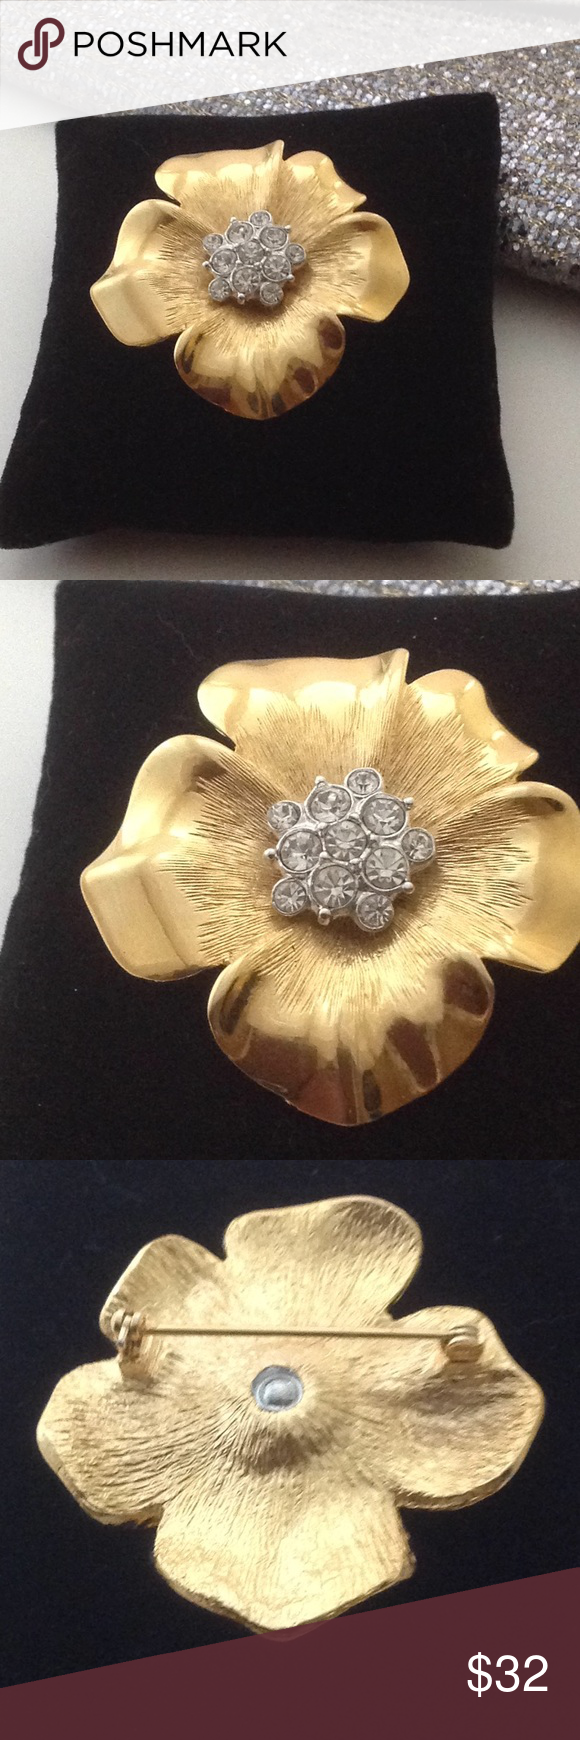 Gold tone brooch with big clear rhinestones new nwt brooches